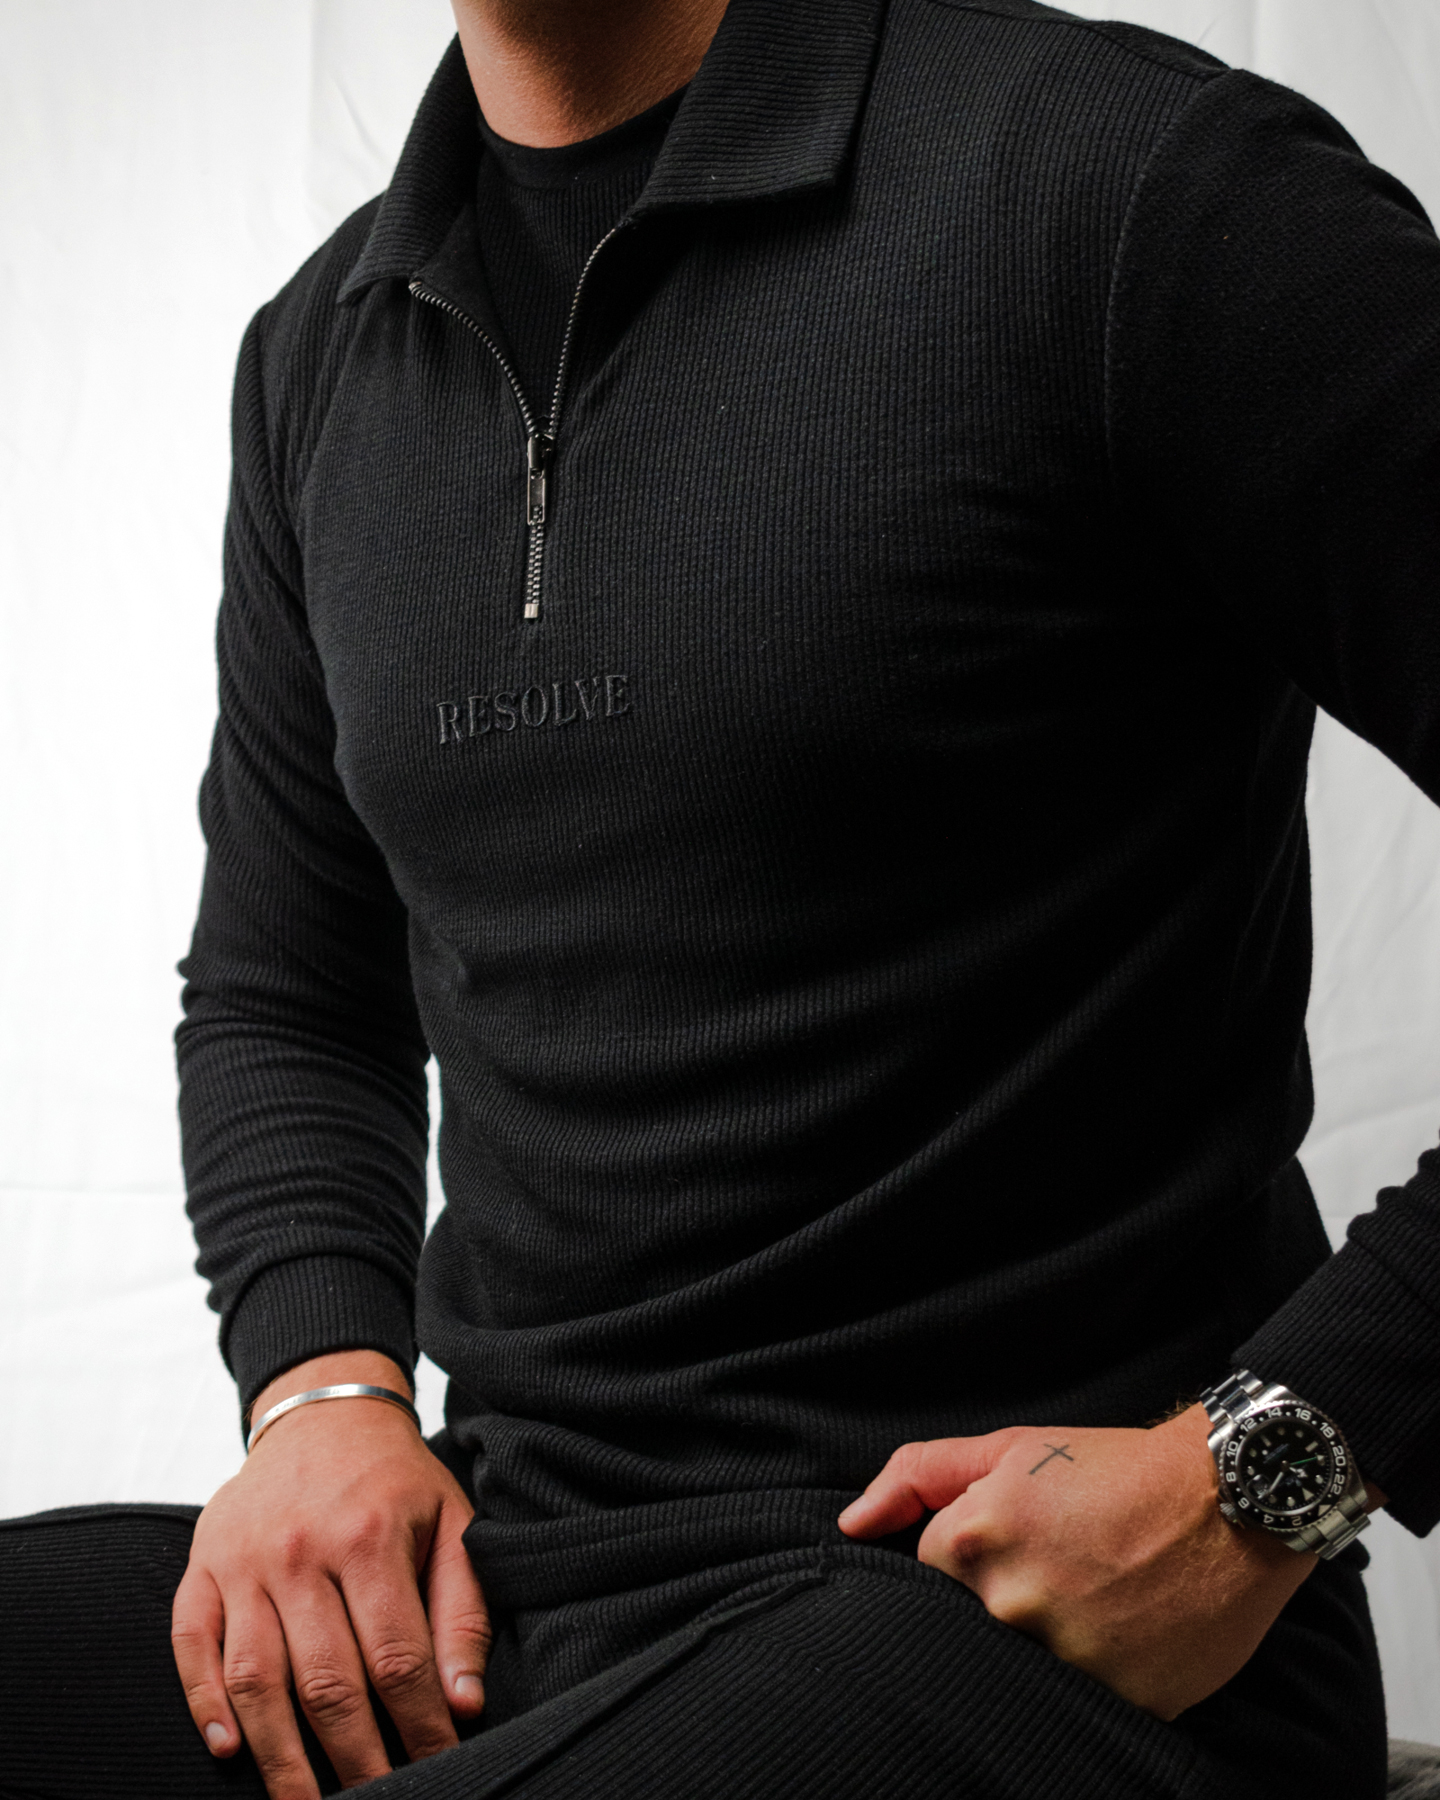 Resolve Clothing logo embroidered onto zip up jumper